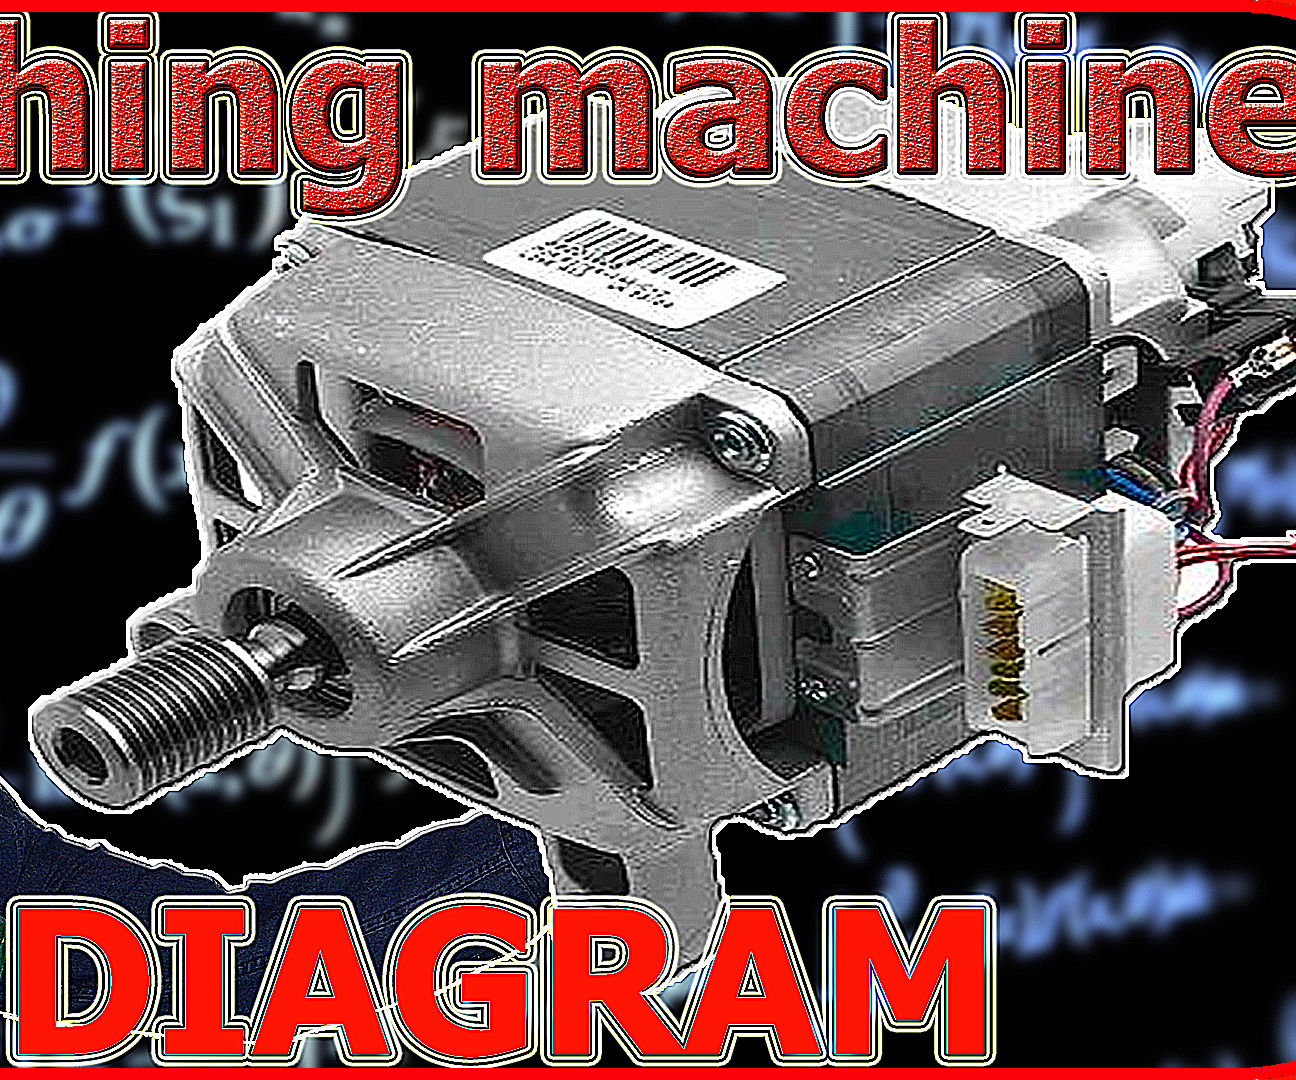 Washing Machine Motor Wiring Diagram: 6 Steps